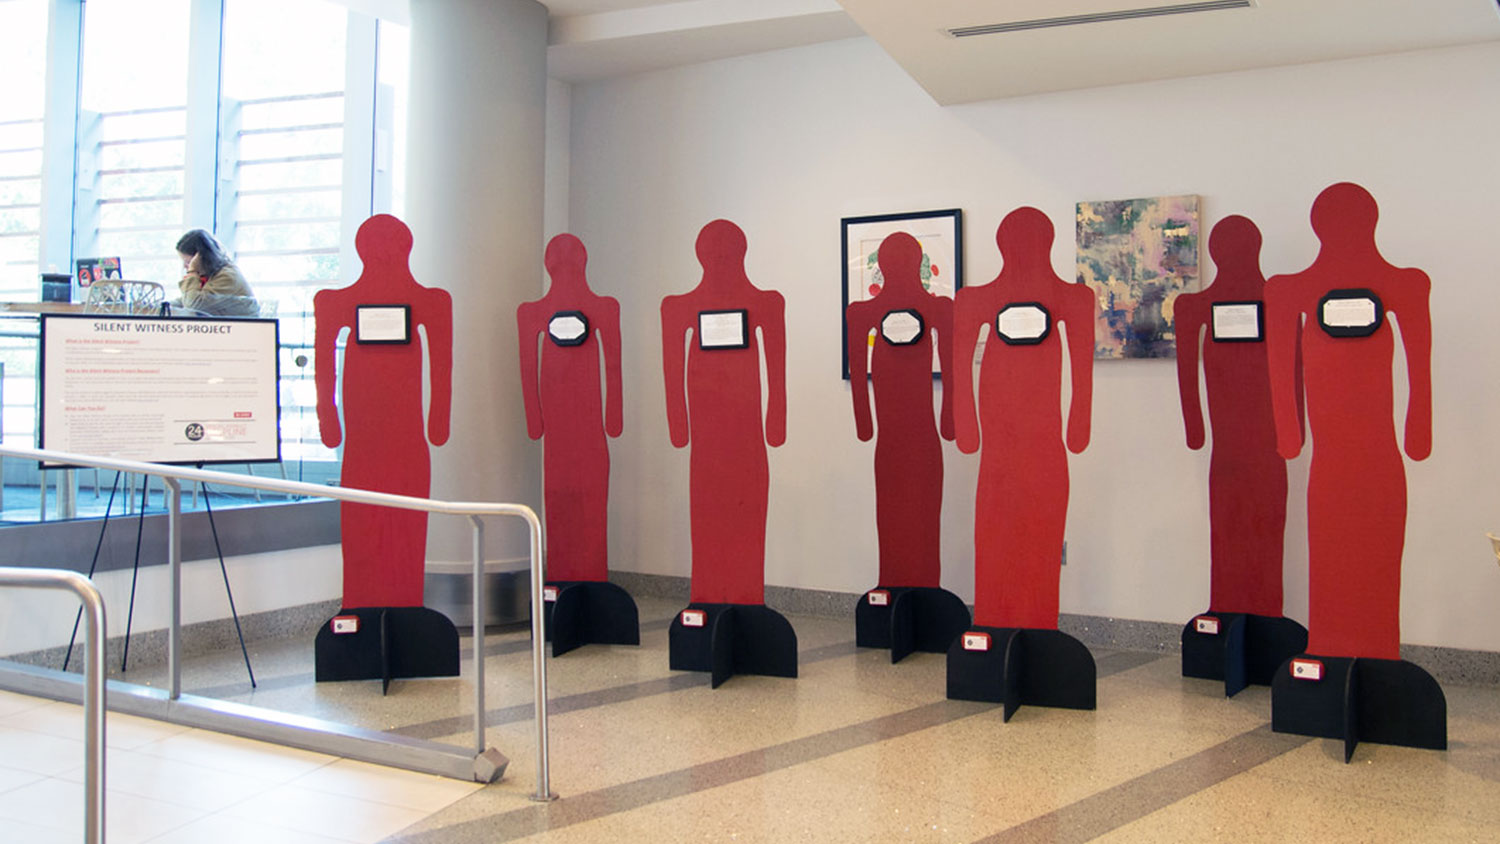 Red cutout figures for Silent Witness Project